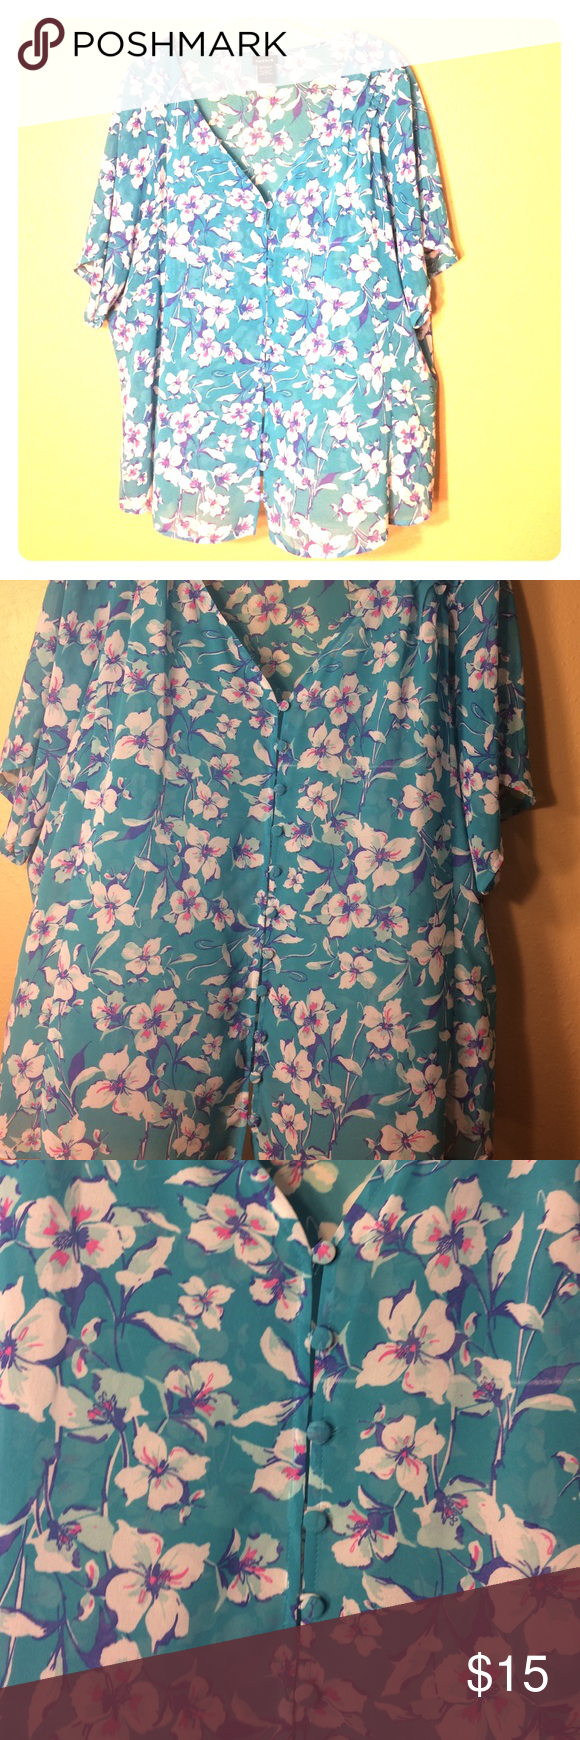 Torrid blouse This is my favorite print from Torrid! This shirt has 0 snags and the buttons are in perfect condition. This shear light weight top is a blue-teal with hot pink, purple and white flowers. It hangs loose for a 1x but is so beautiful! torrid Tops Blouses